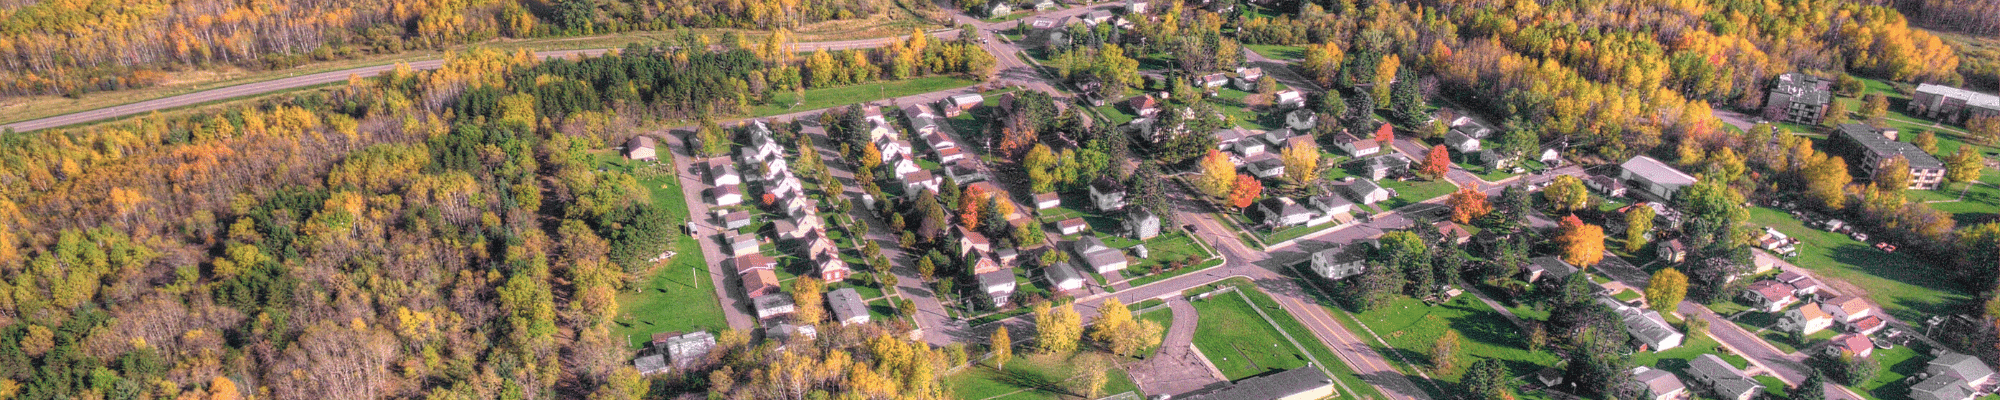 aerial image of neighborhood